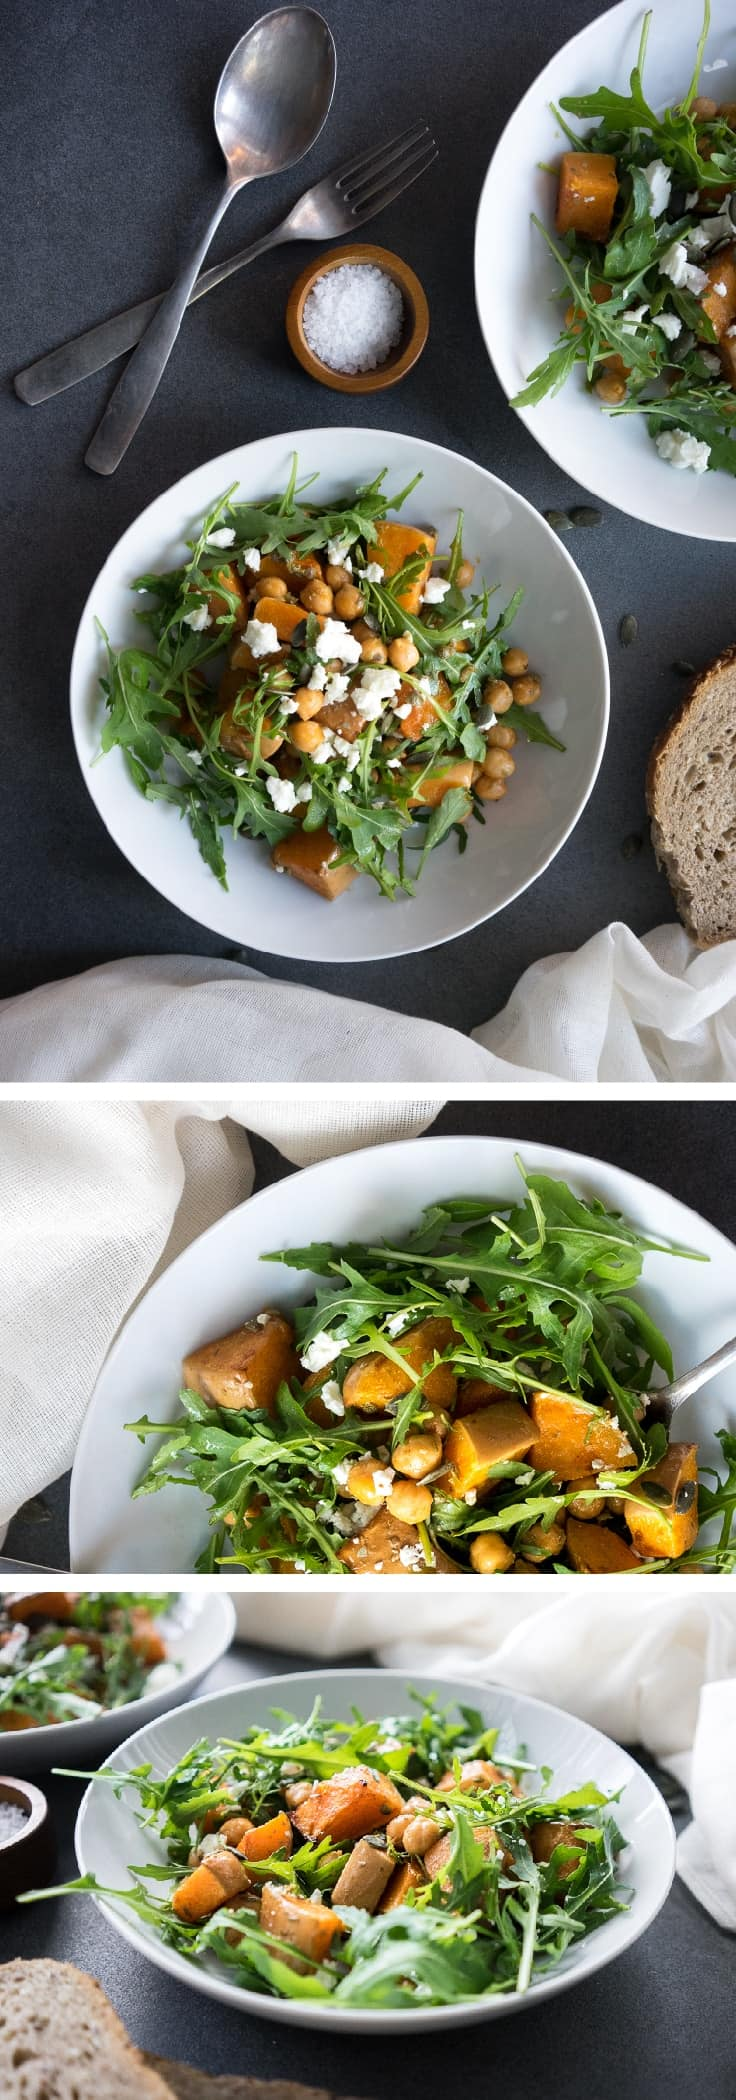 A warming and filling salad to die for! This colourful and delicious warm roasted butternut squash salad makes you feel fantastic, but tastes amazing! Pinning for dinner! width=